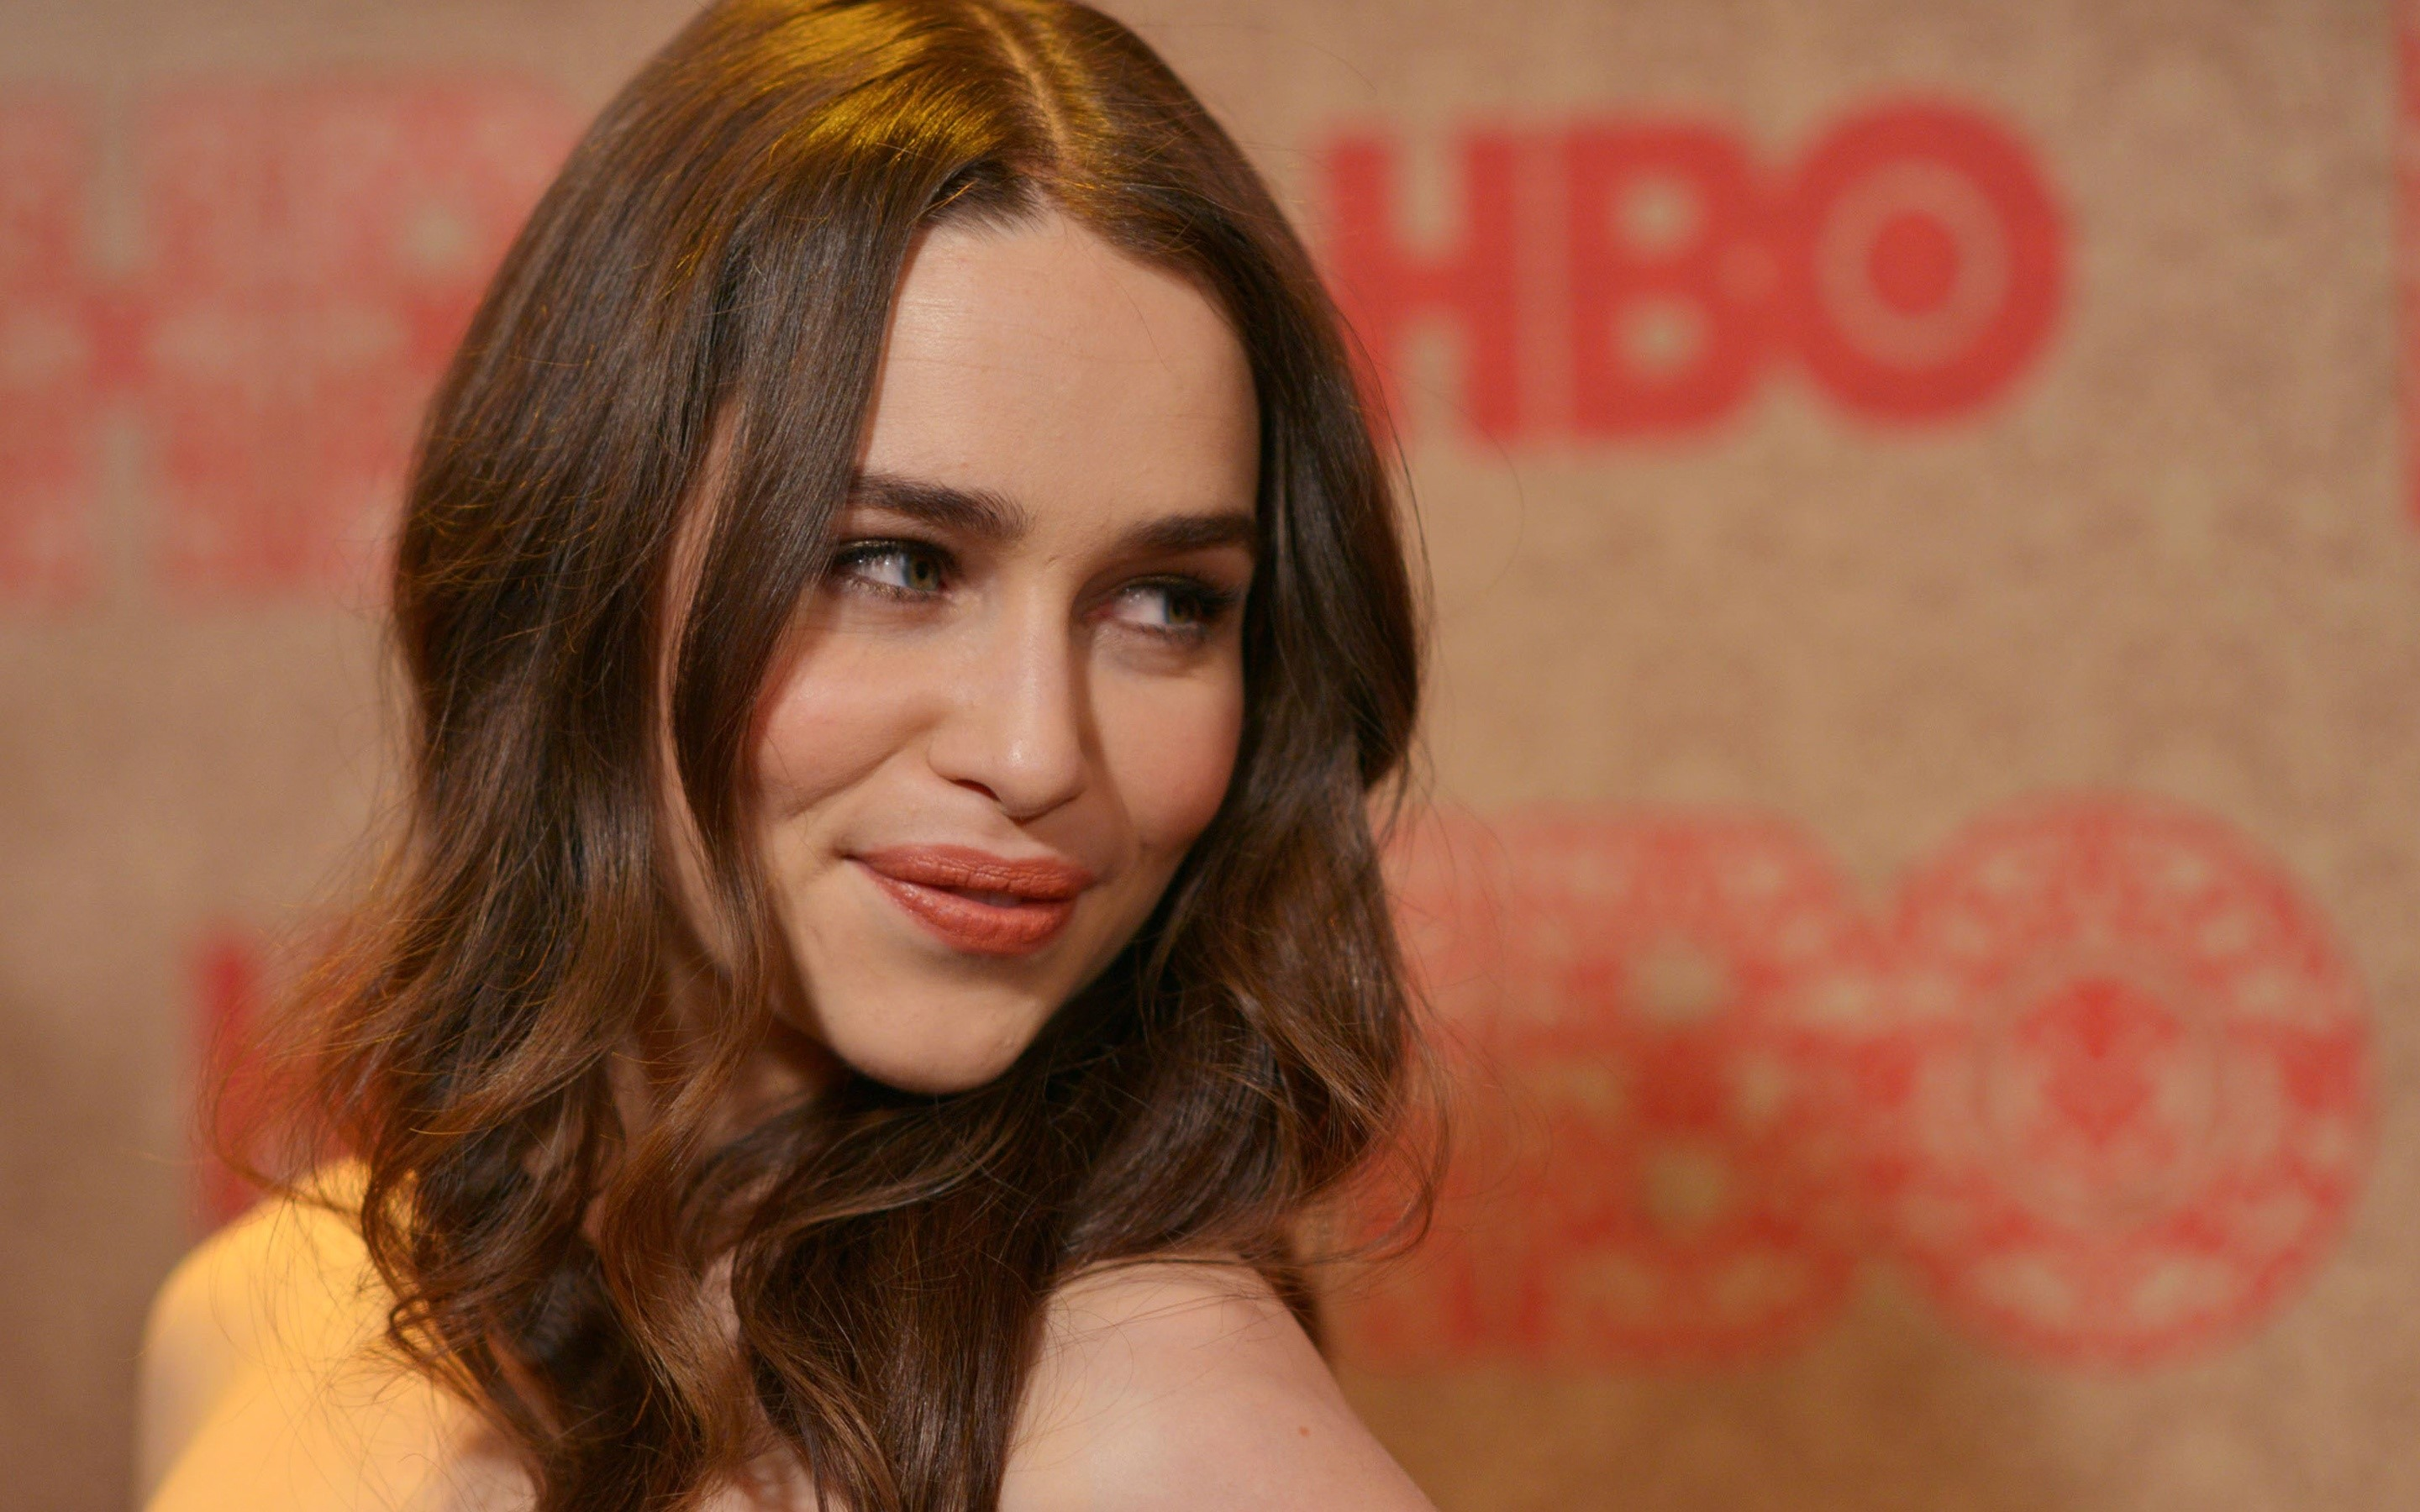 Wallpaper Emilia Clarke on HBO